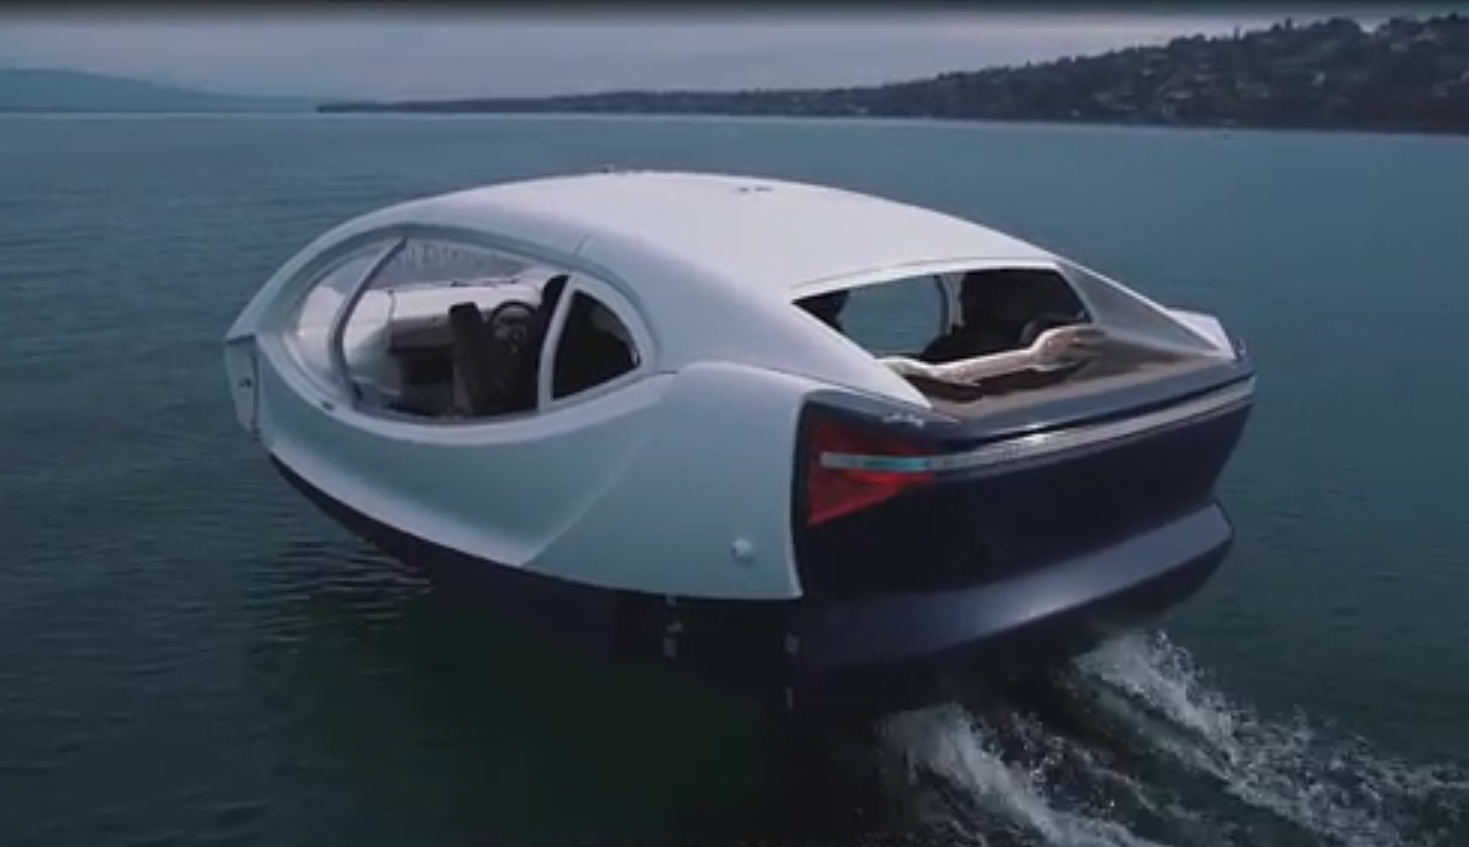 seabubbles les premiers tests de la voiture volante sur la seine dans quelques jours paris. Black Bedroom Furniture Sets. Home Design Ideas